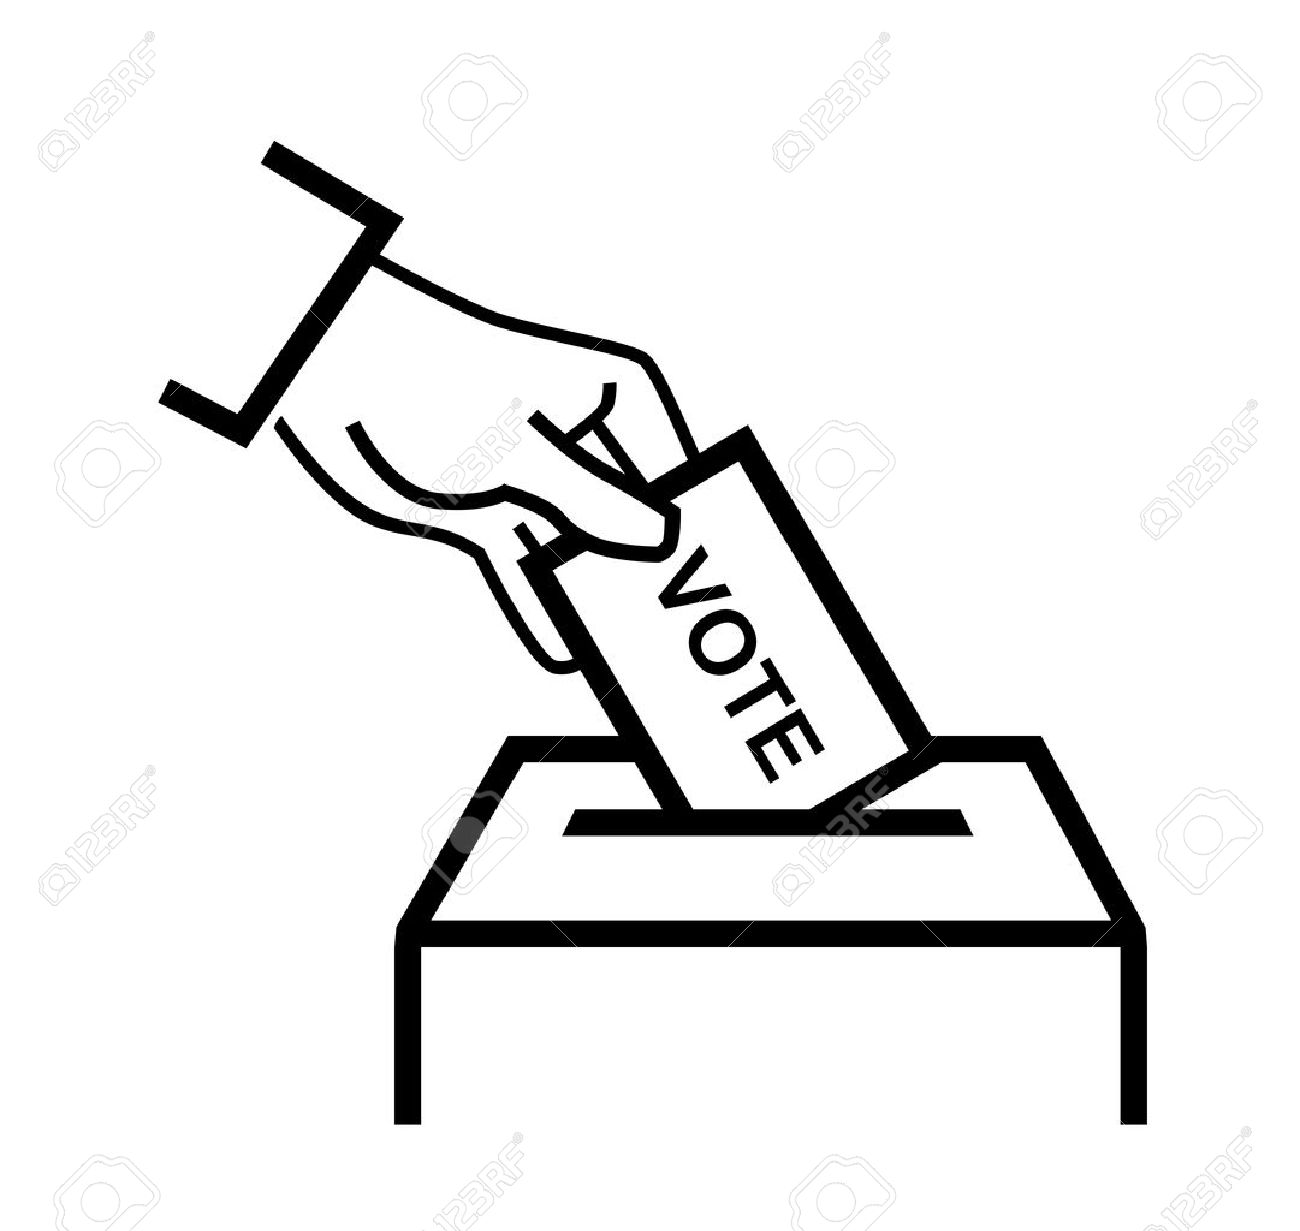 1458 Voting free clipart.